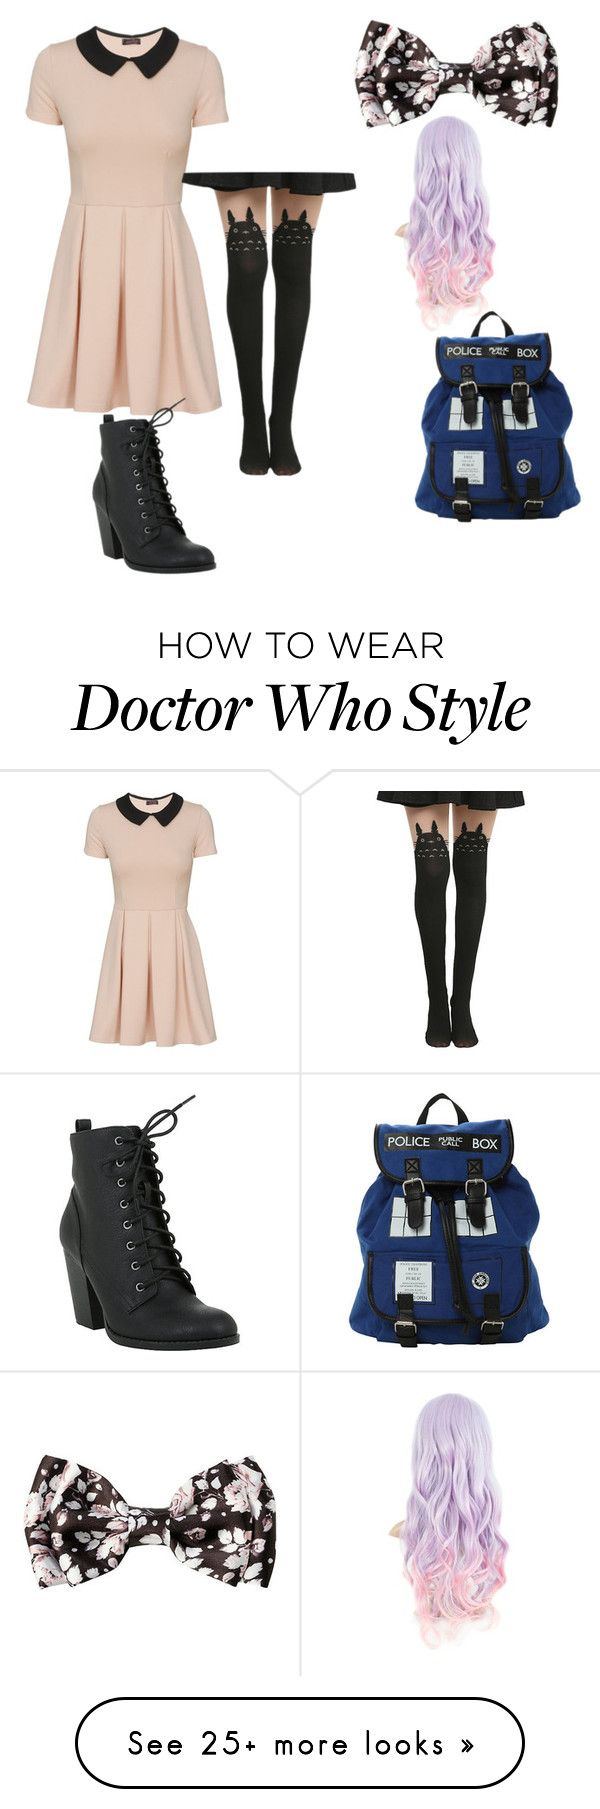 """""""Untitled #3"""" by bandsformybae on Polyvore featuring Ghibli"""